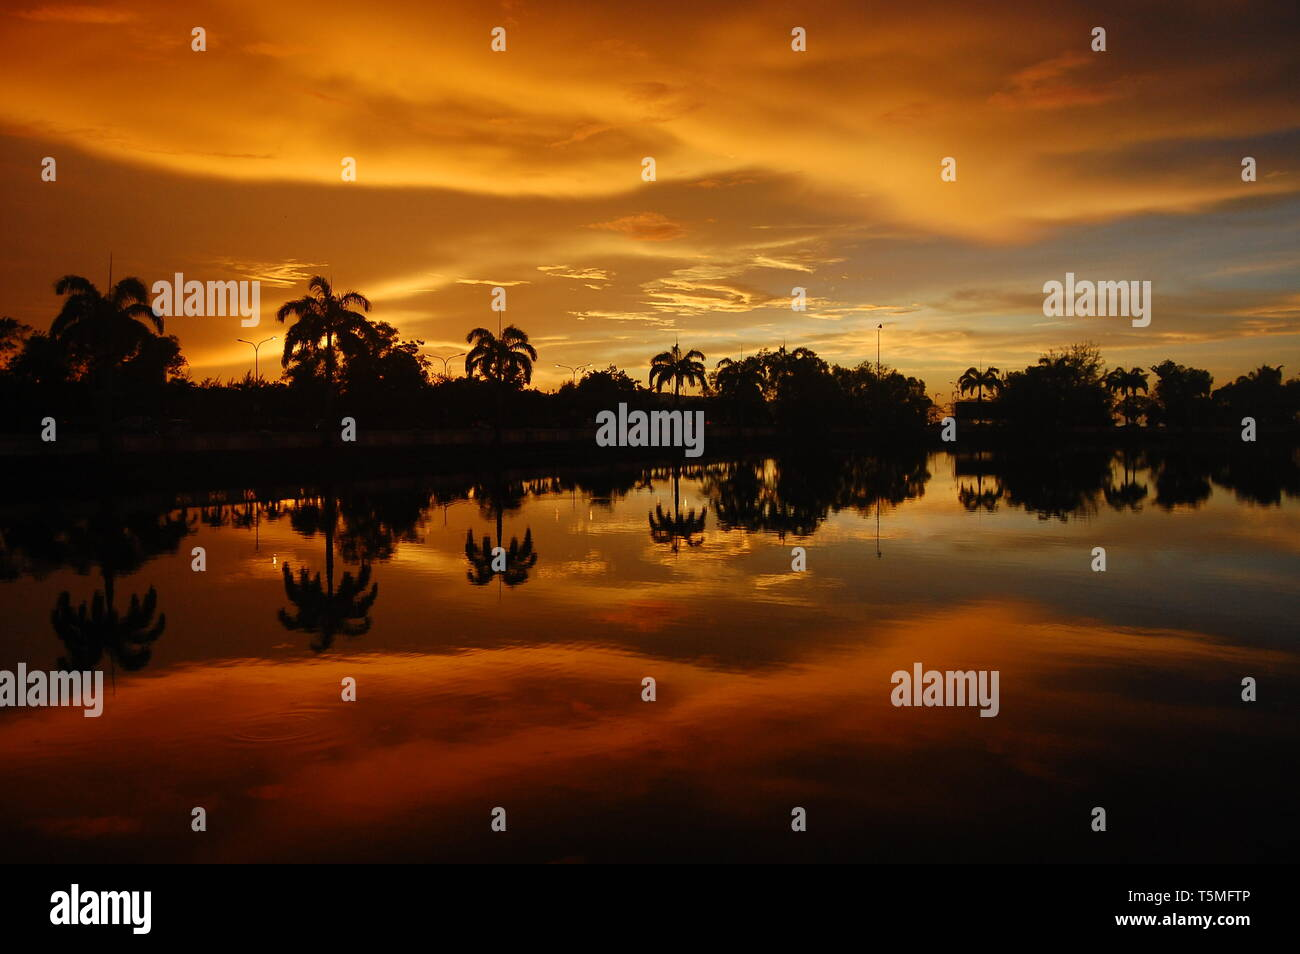 Sunset of fire over the lake and palm trees in the tropical island of Borneo in Kota Kinabalu, Malaysia. Clouds and spectacular colours fill the sky. - Stock Image